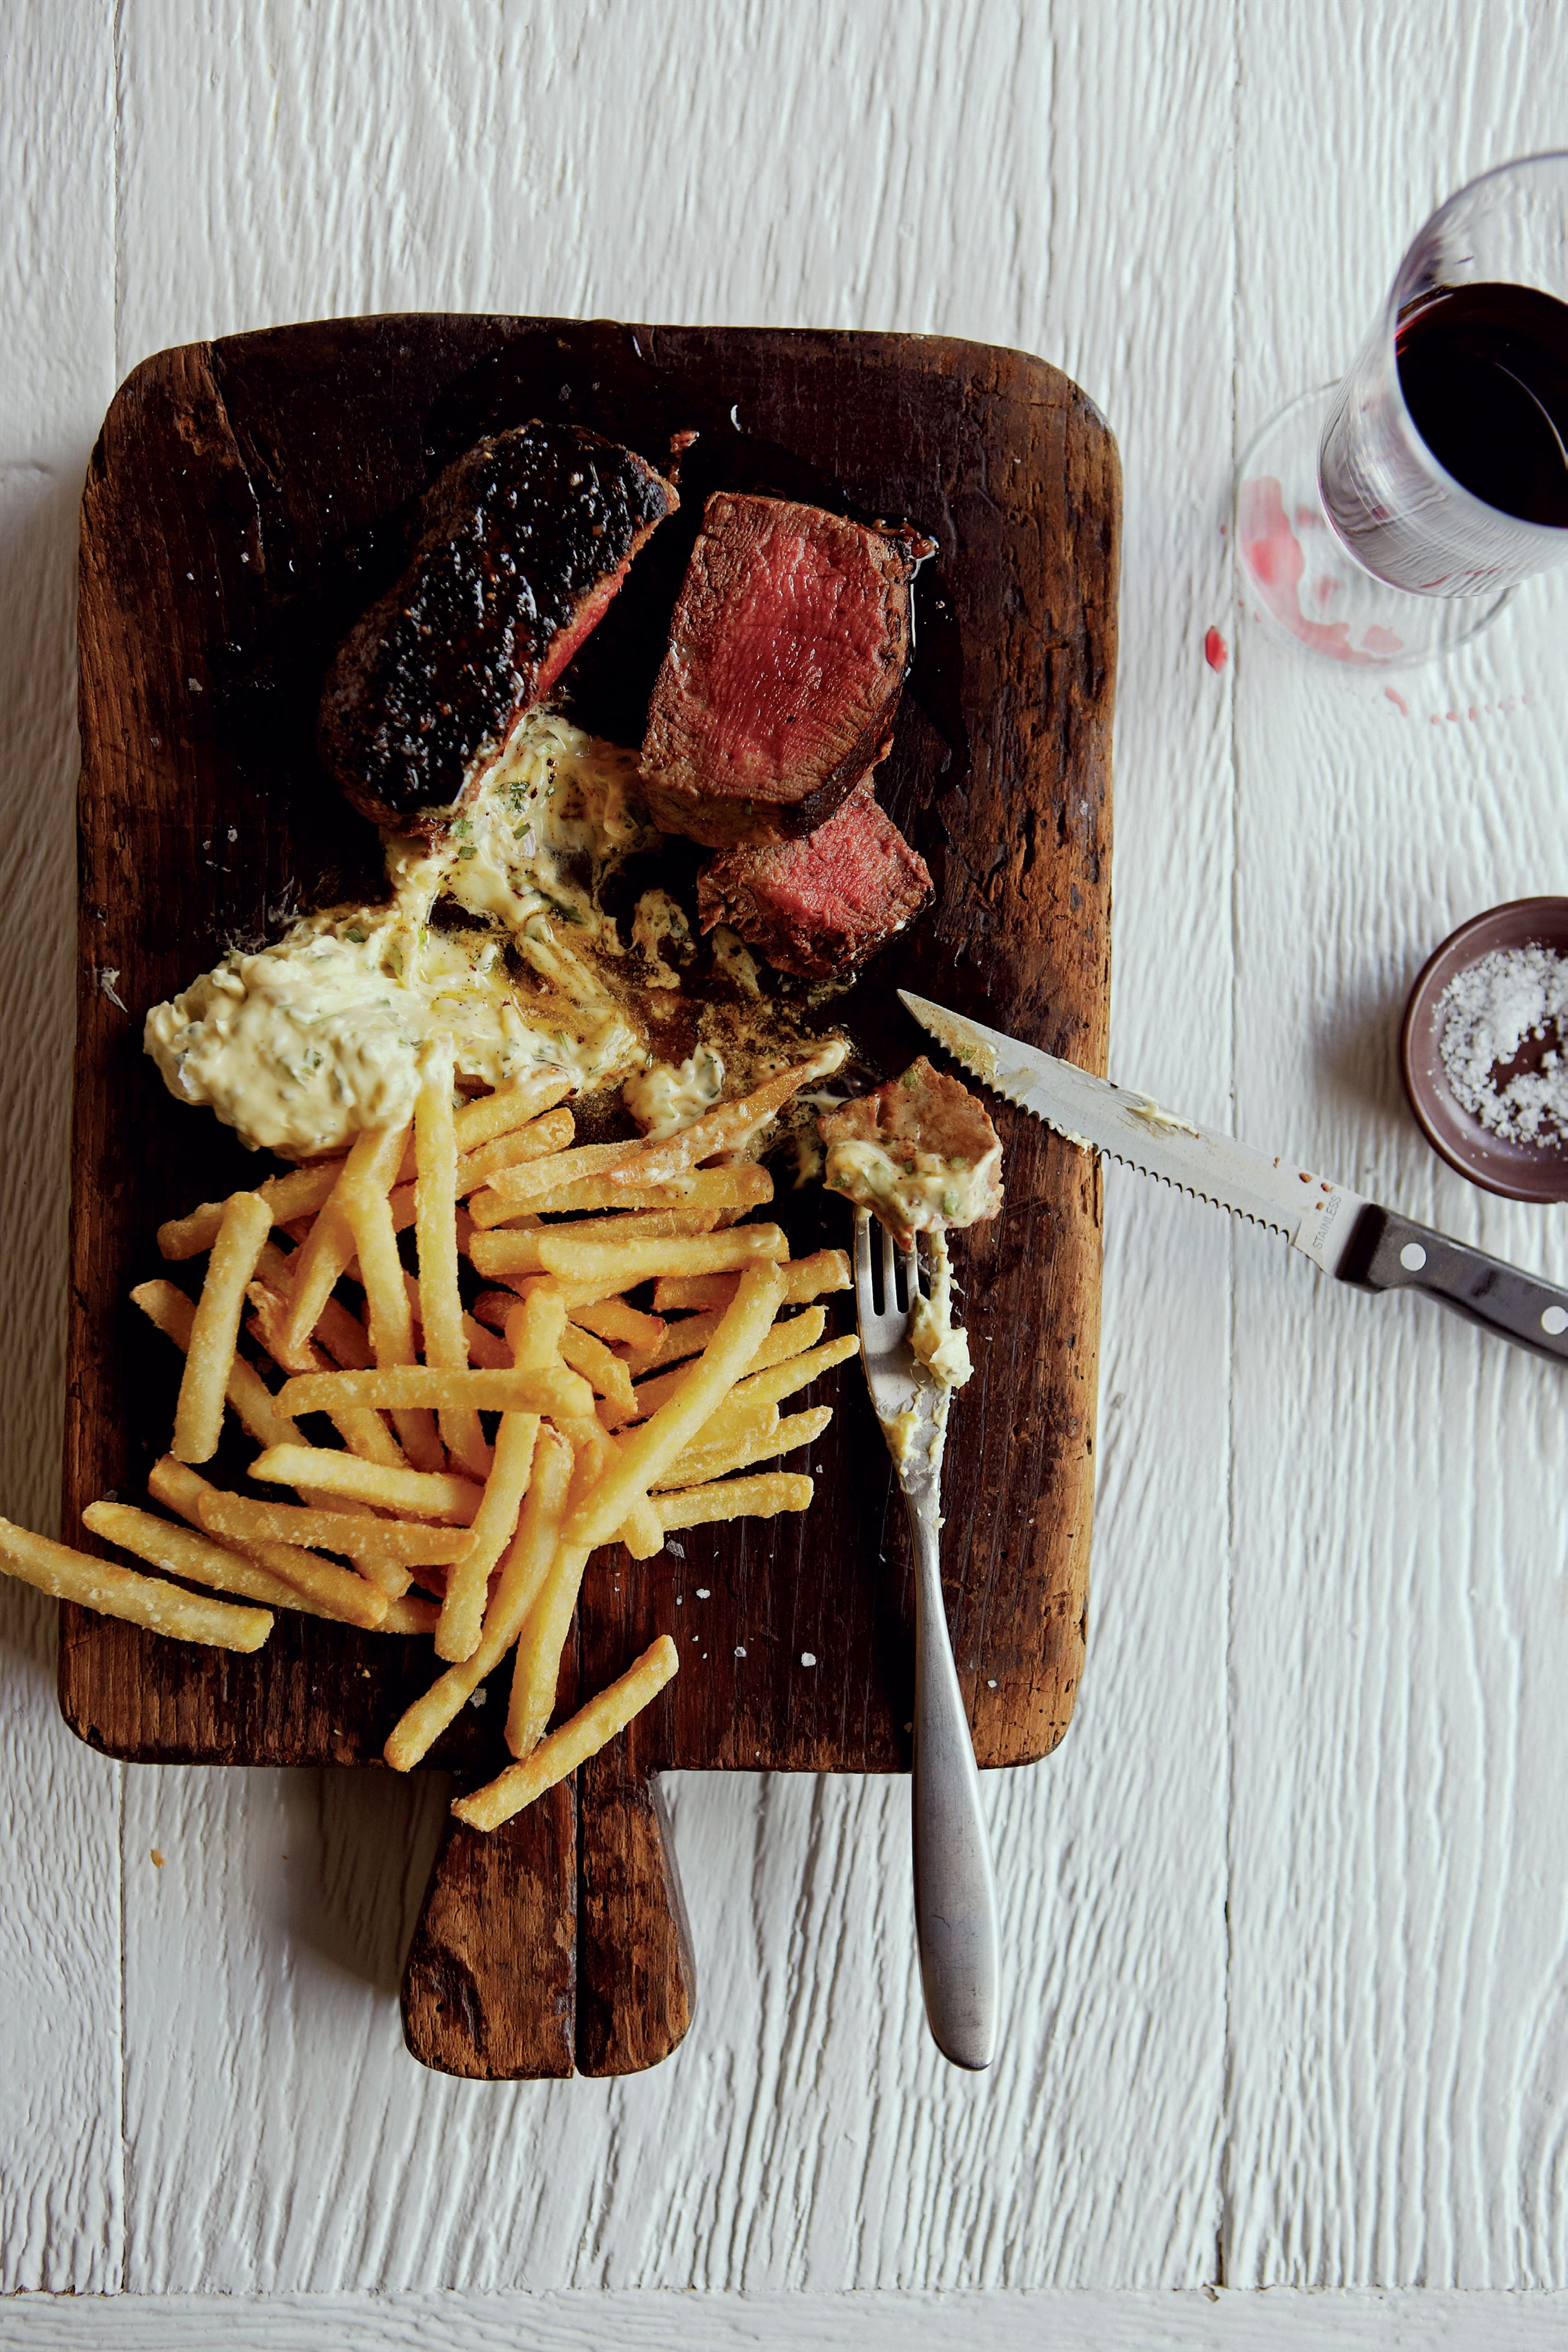 Spoil-yourself yorkshire wagyu fillet steak with fries and béarnaise sauce